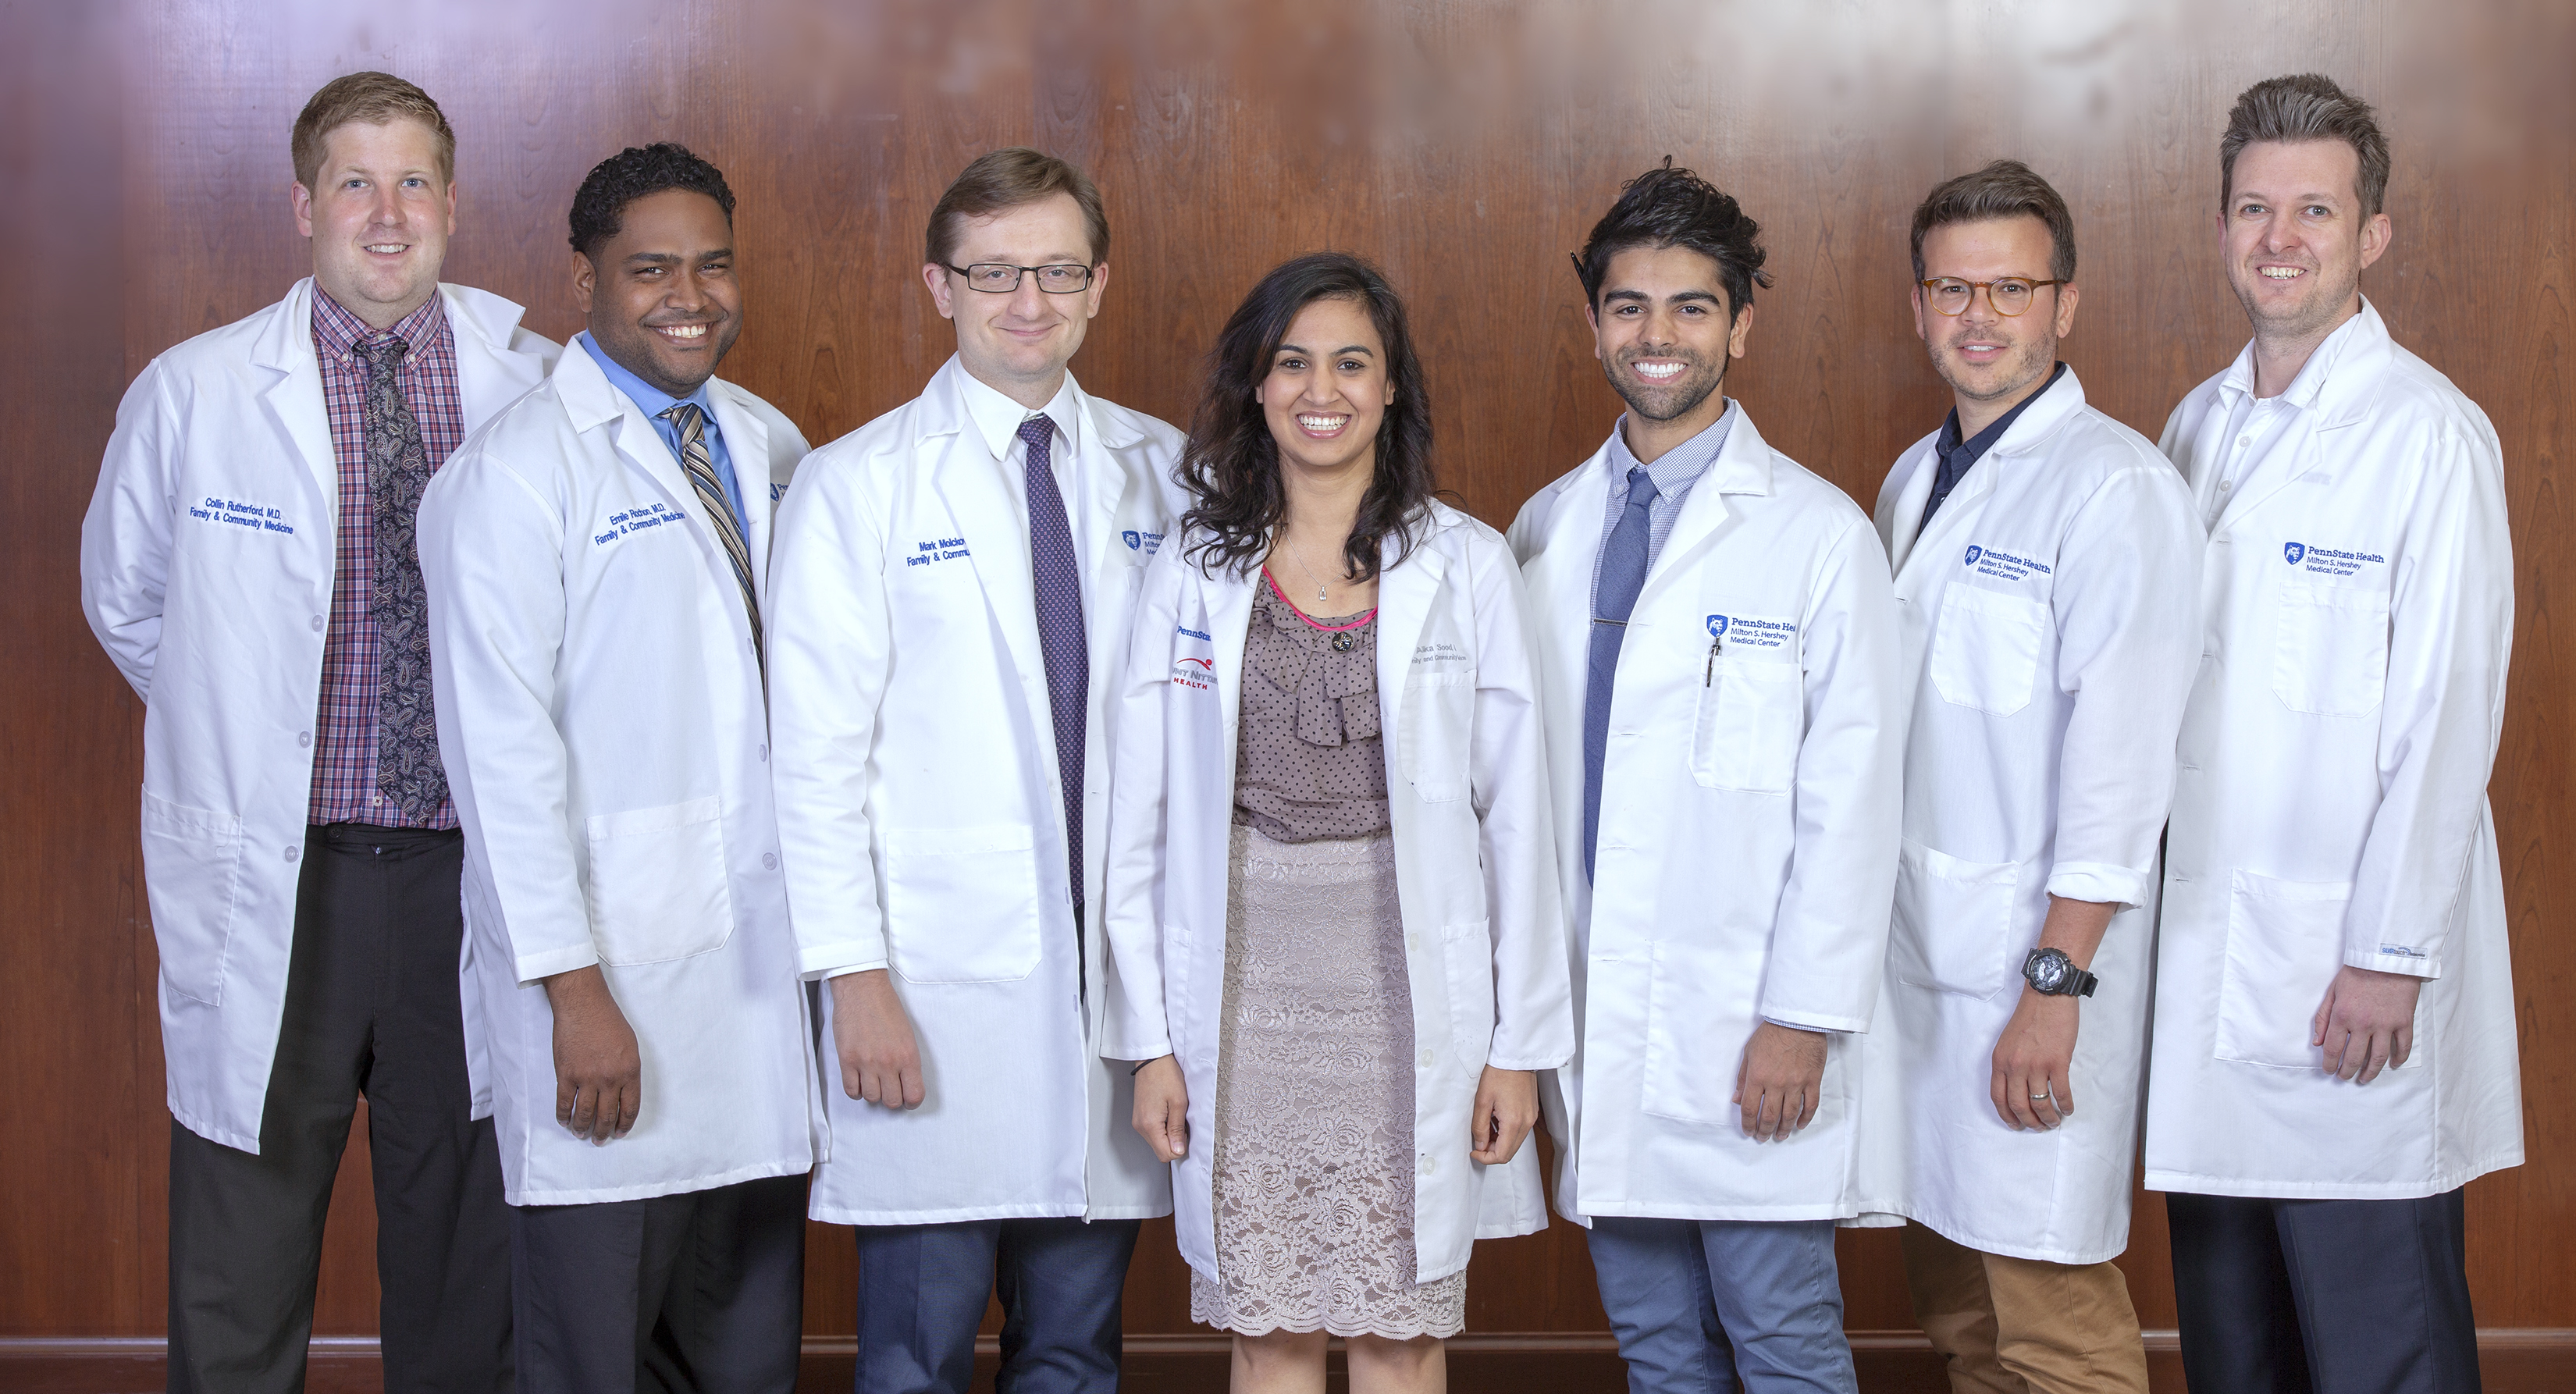 Six men and one woman wearing white lab coats with the Hershey Medical Center logo and their names on them stand in a row and smile. The men are wearing shirts and ties, and the woman is wearing a skirt and top. The wall behind them is made of wood paneling.